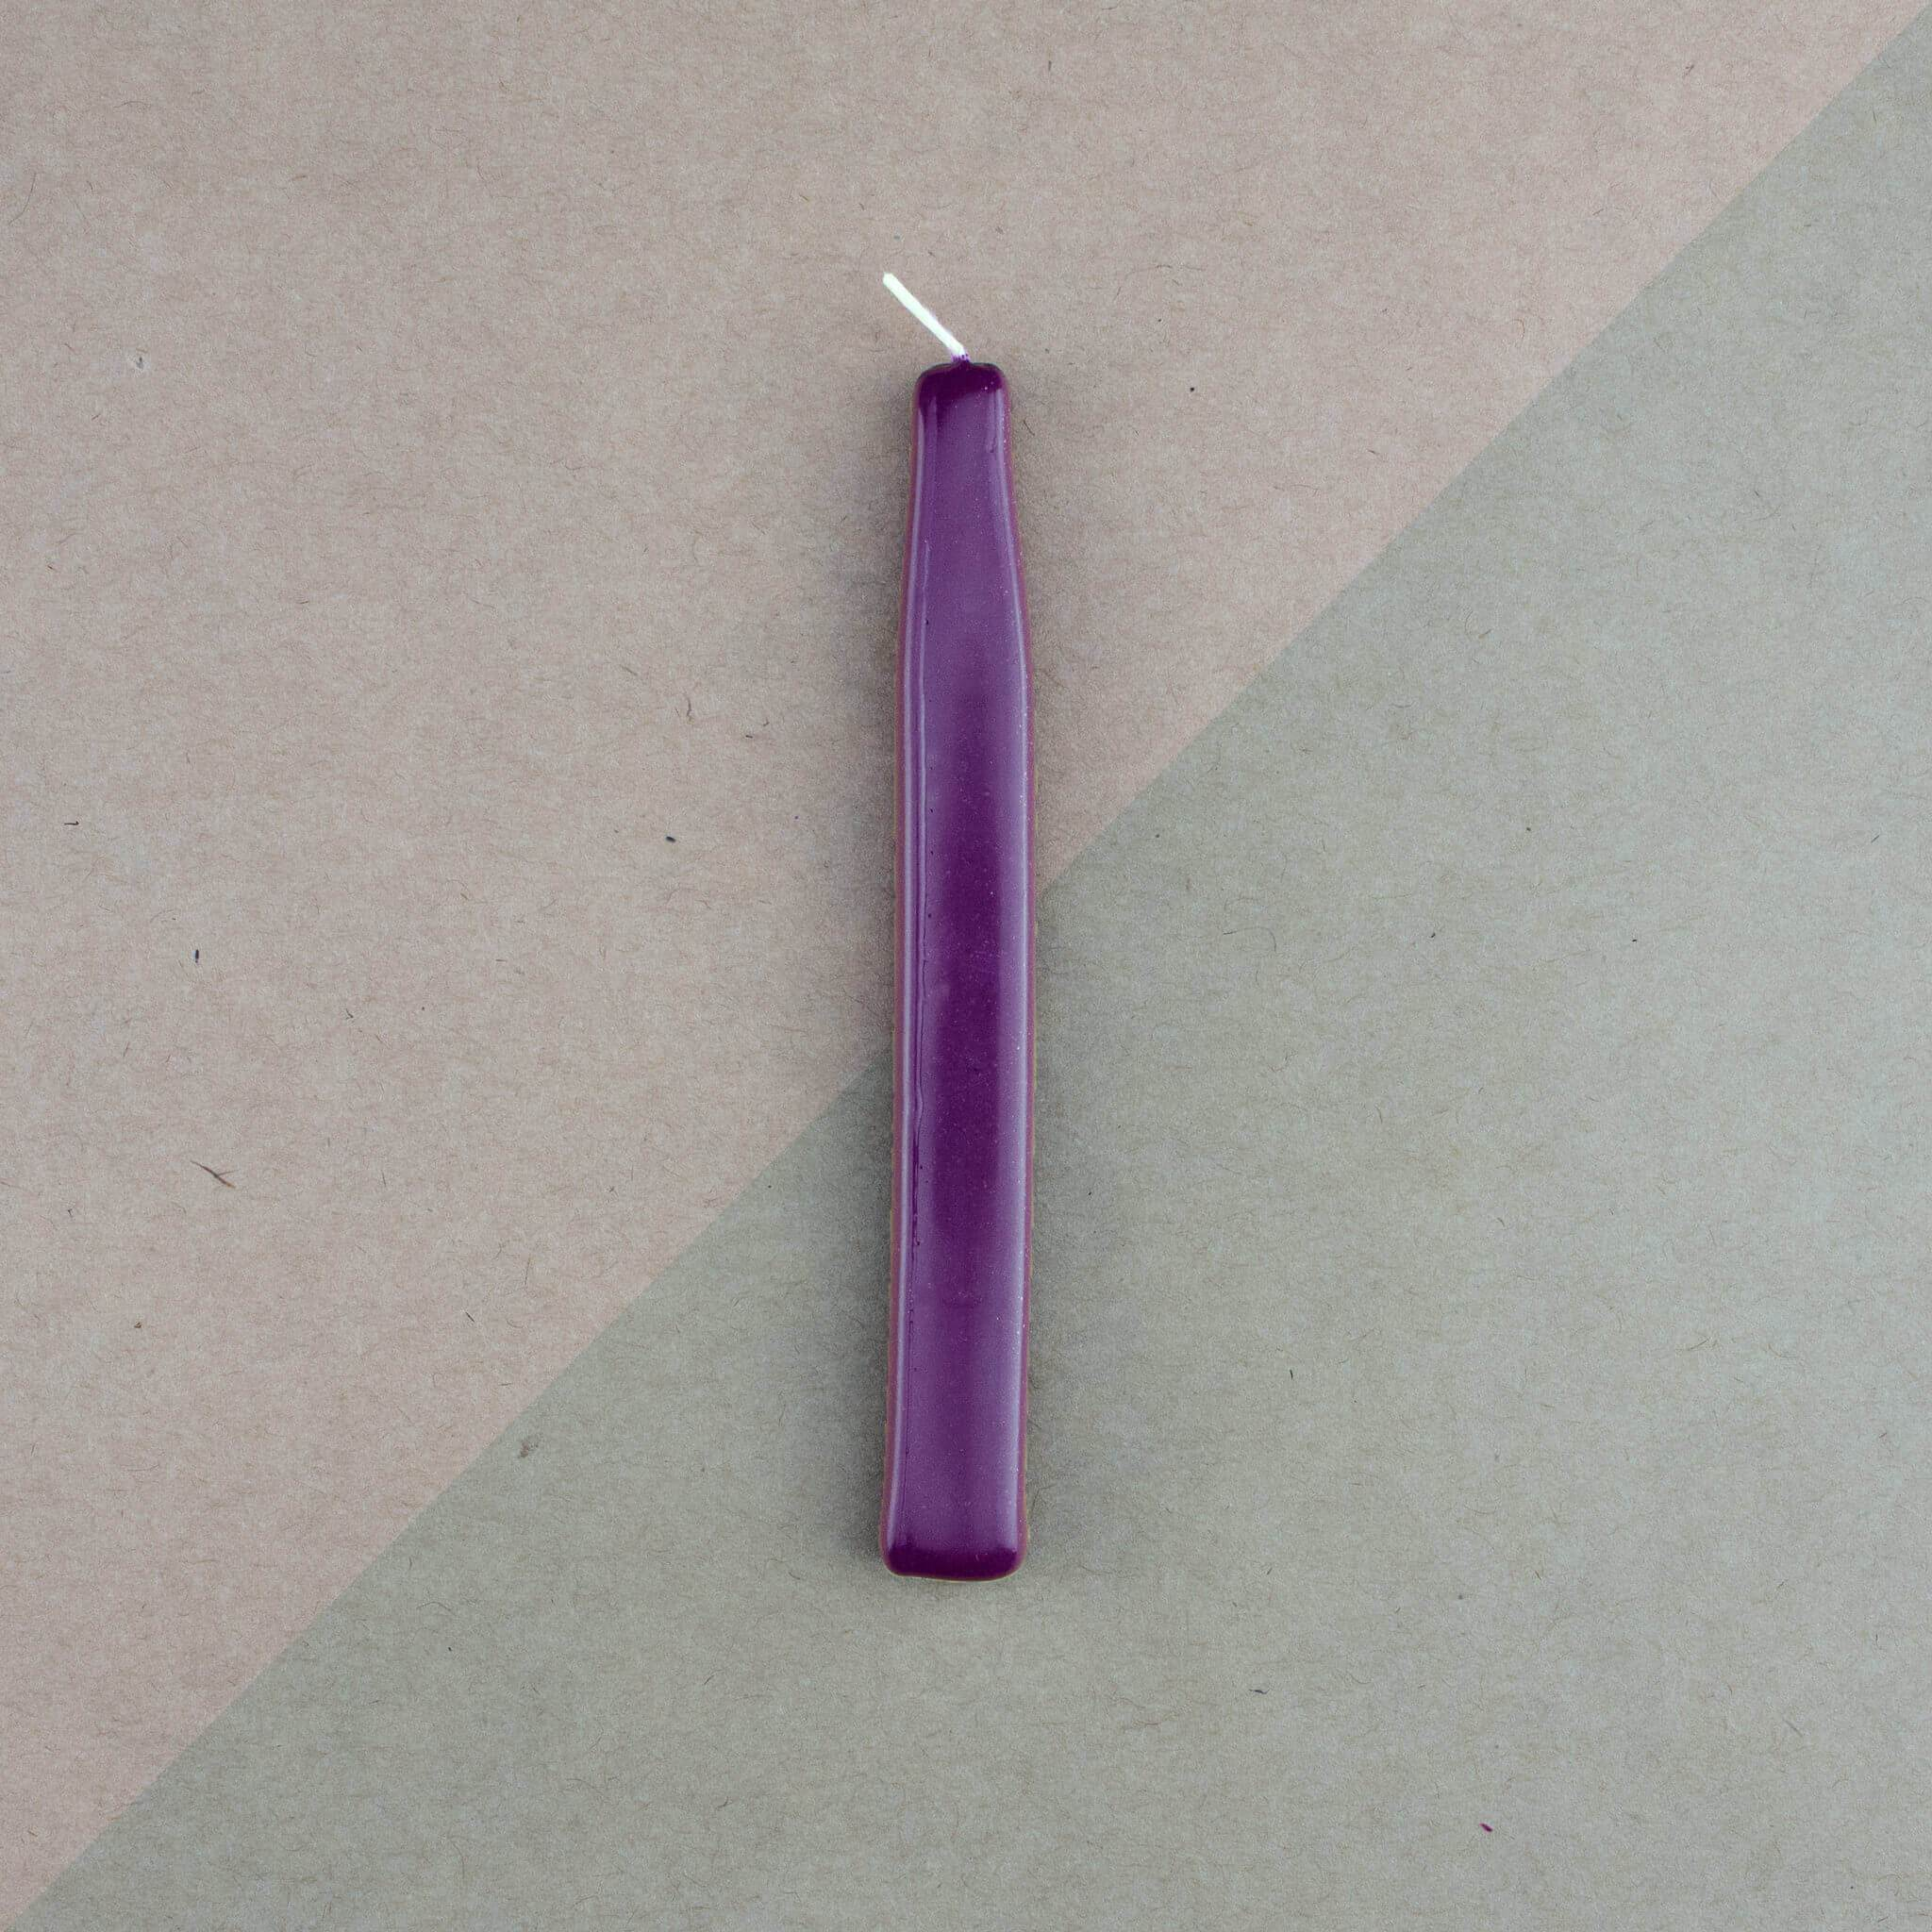 Kustom Haus Traditional Sealing Wax Stick with Wick - Violet